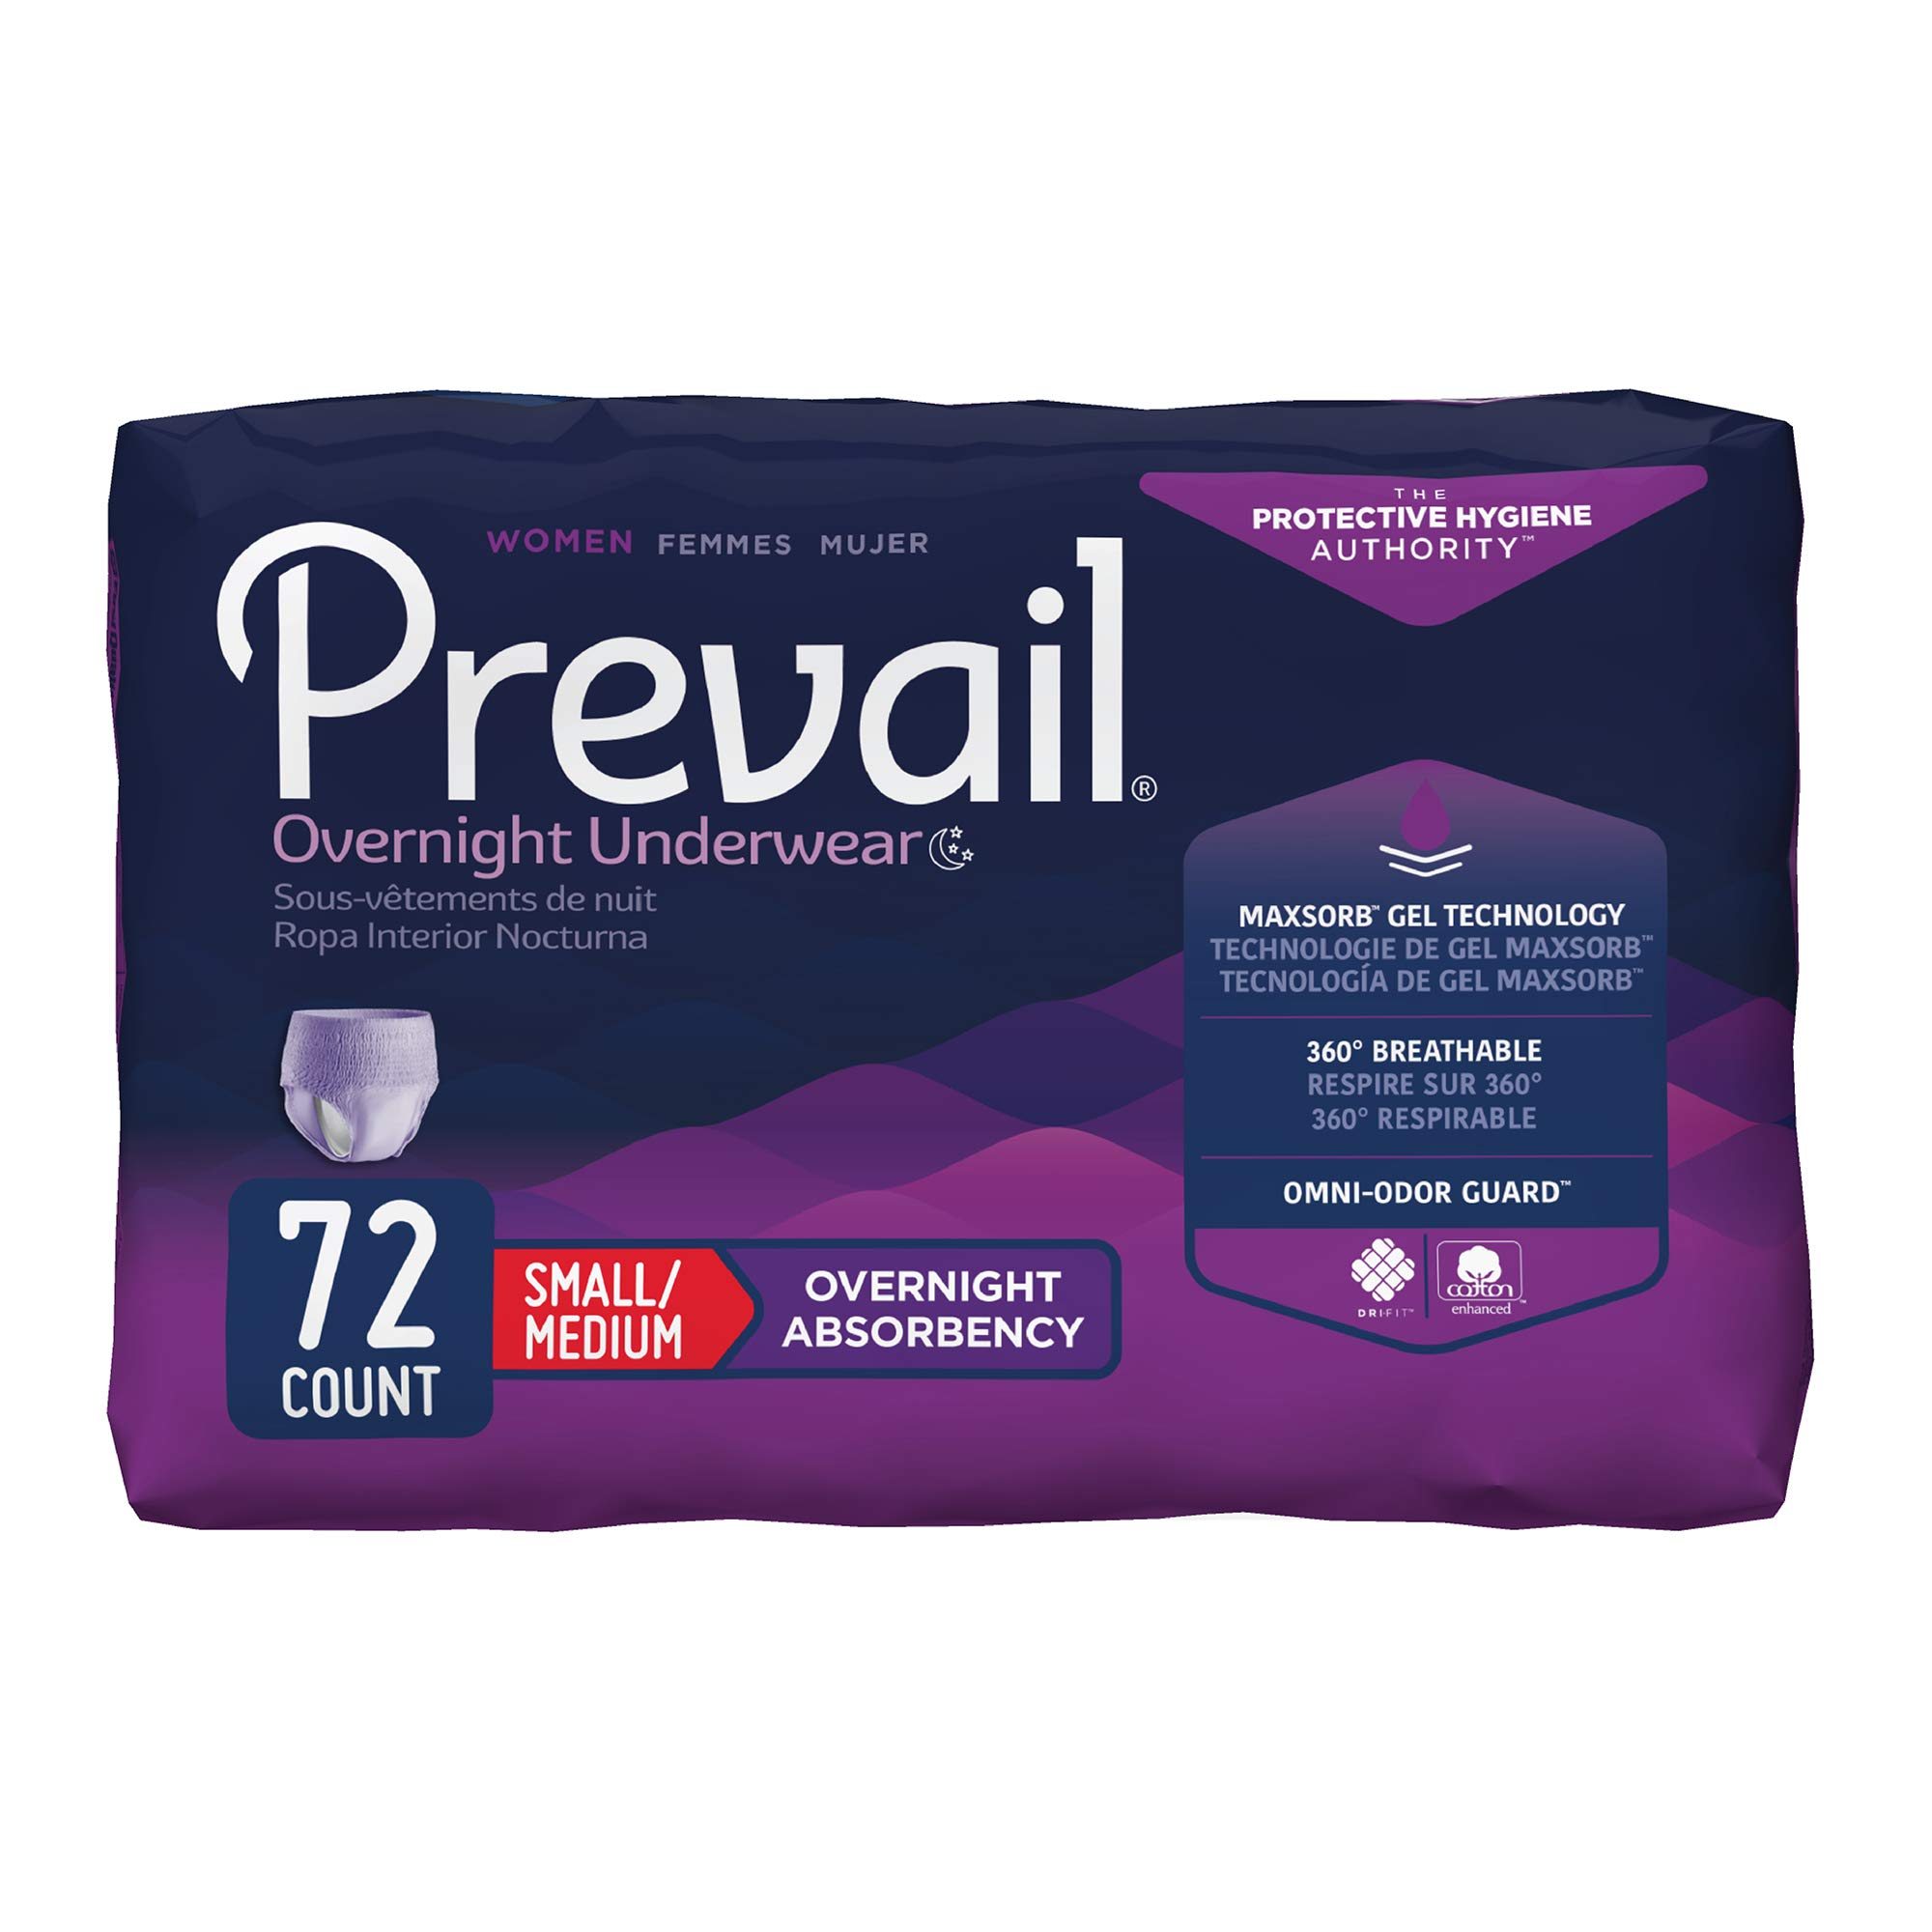 Prevail Overnight Absorbency Incontinence Underwear for Women, Small/Medium, 72 Count by Prevail